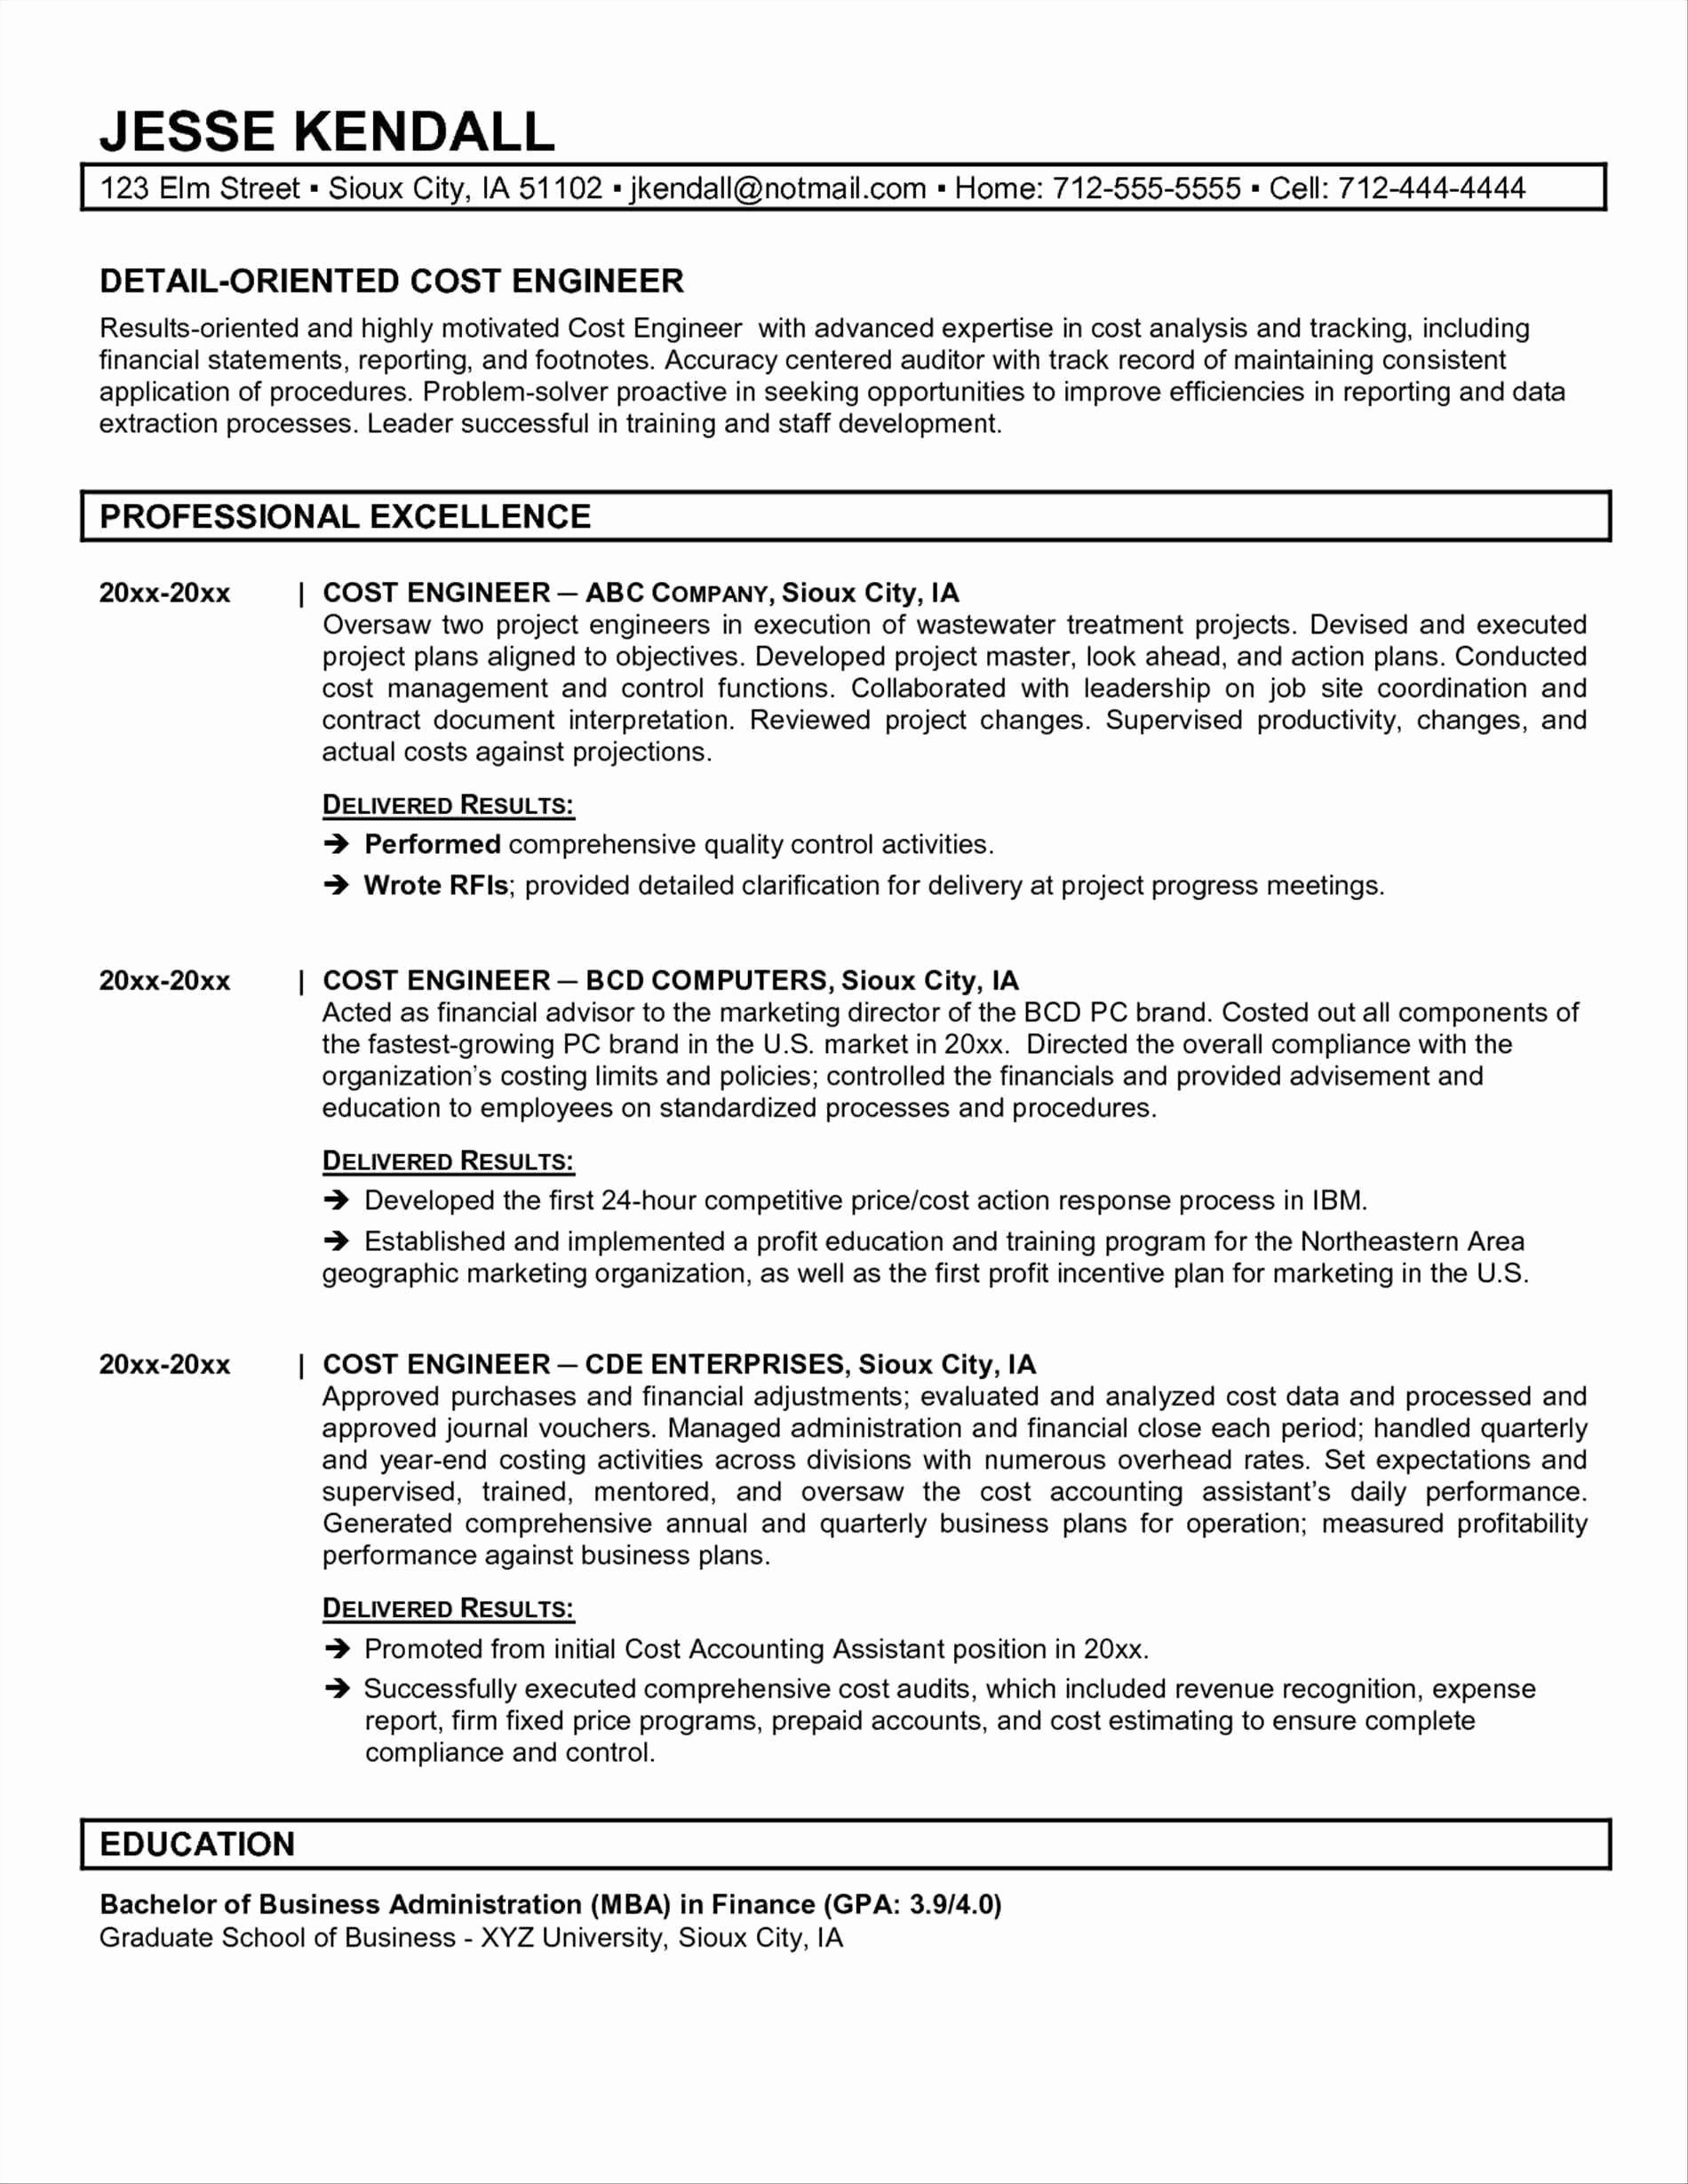 001 Fearsome Professional Development Plan Template For Engineer High Def  Engineers Goal ExampleFull